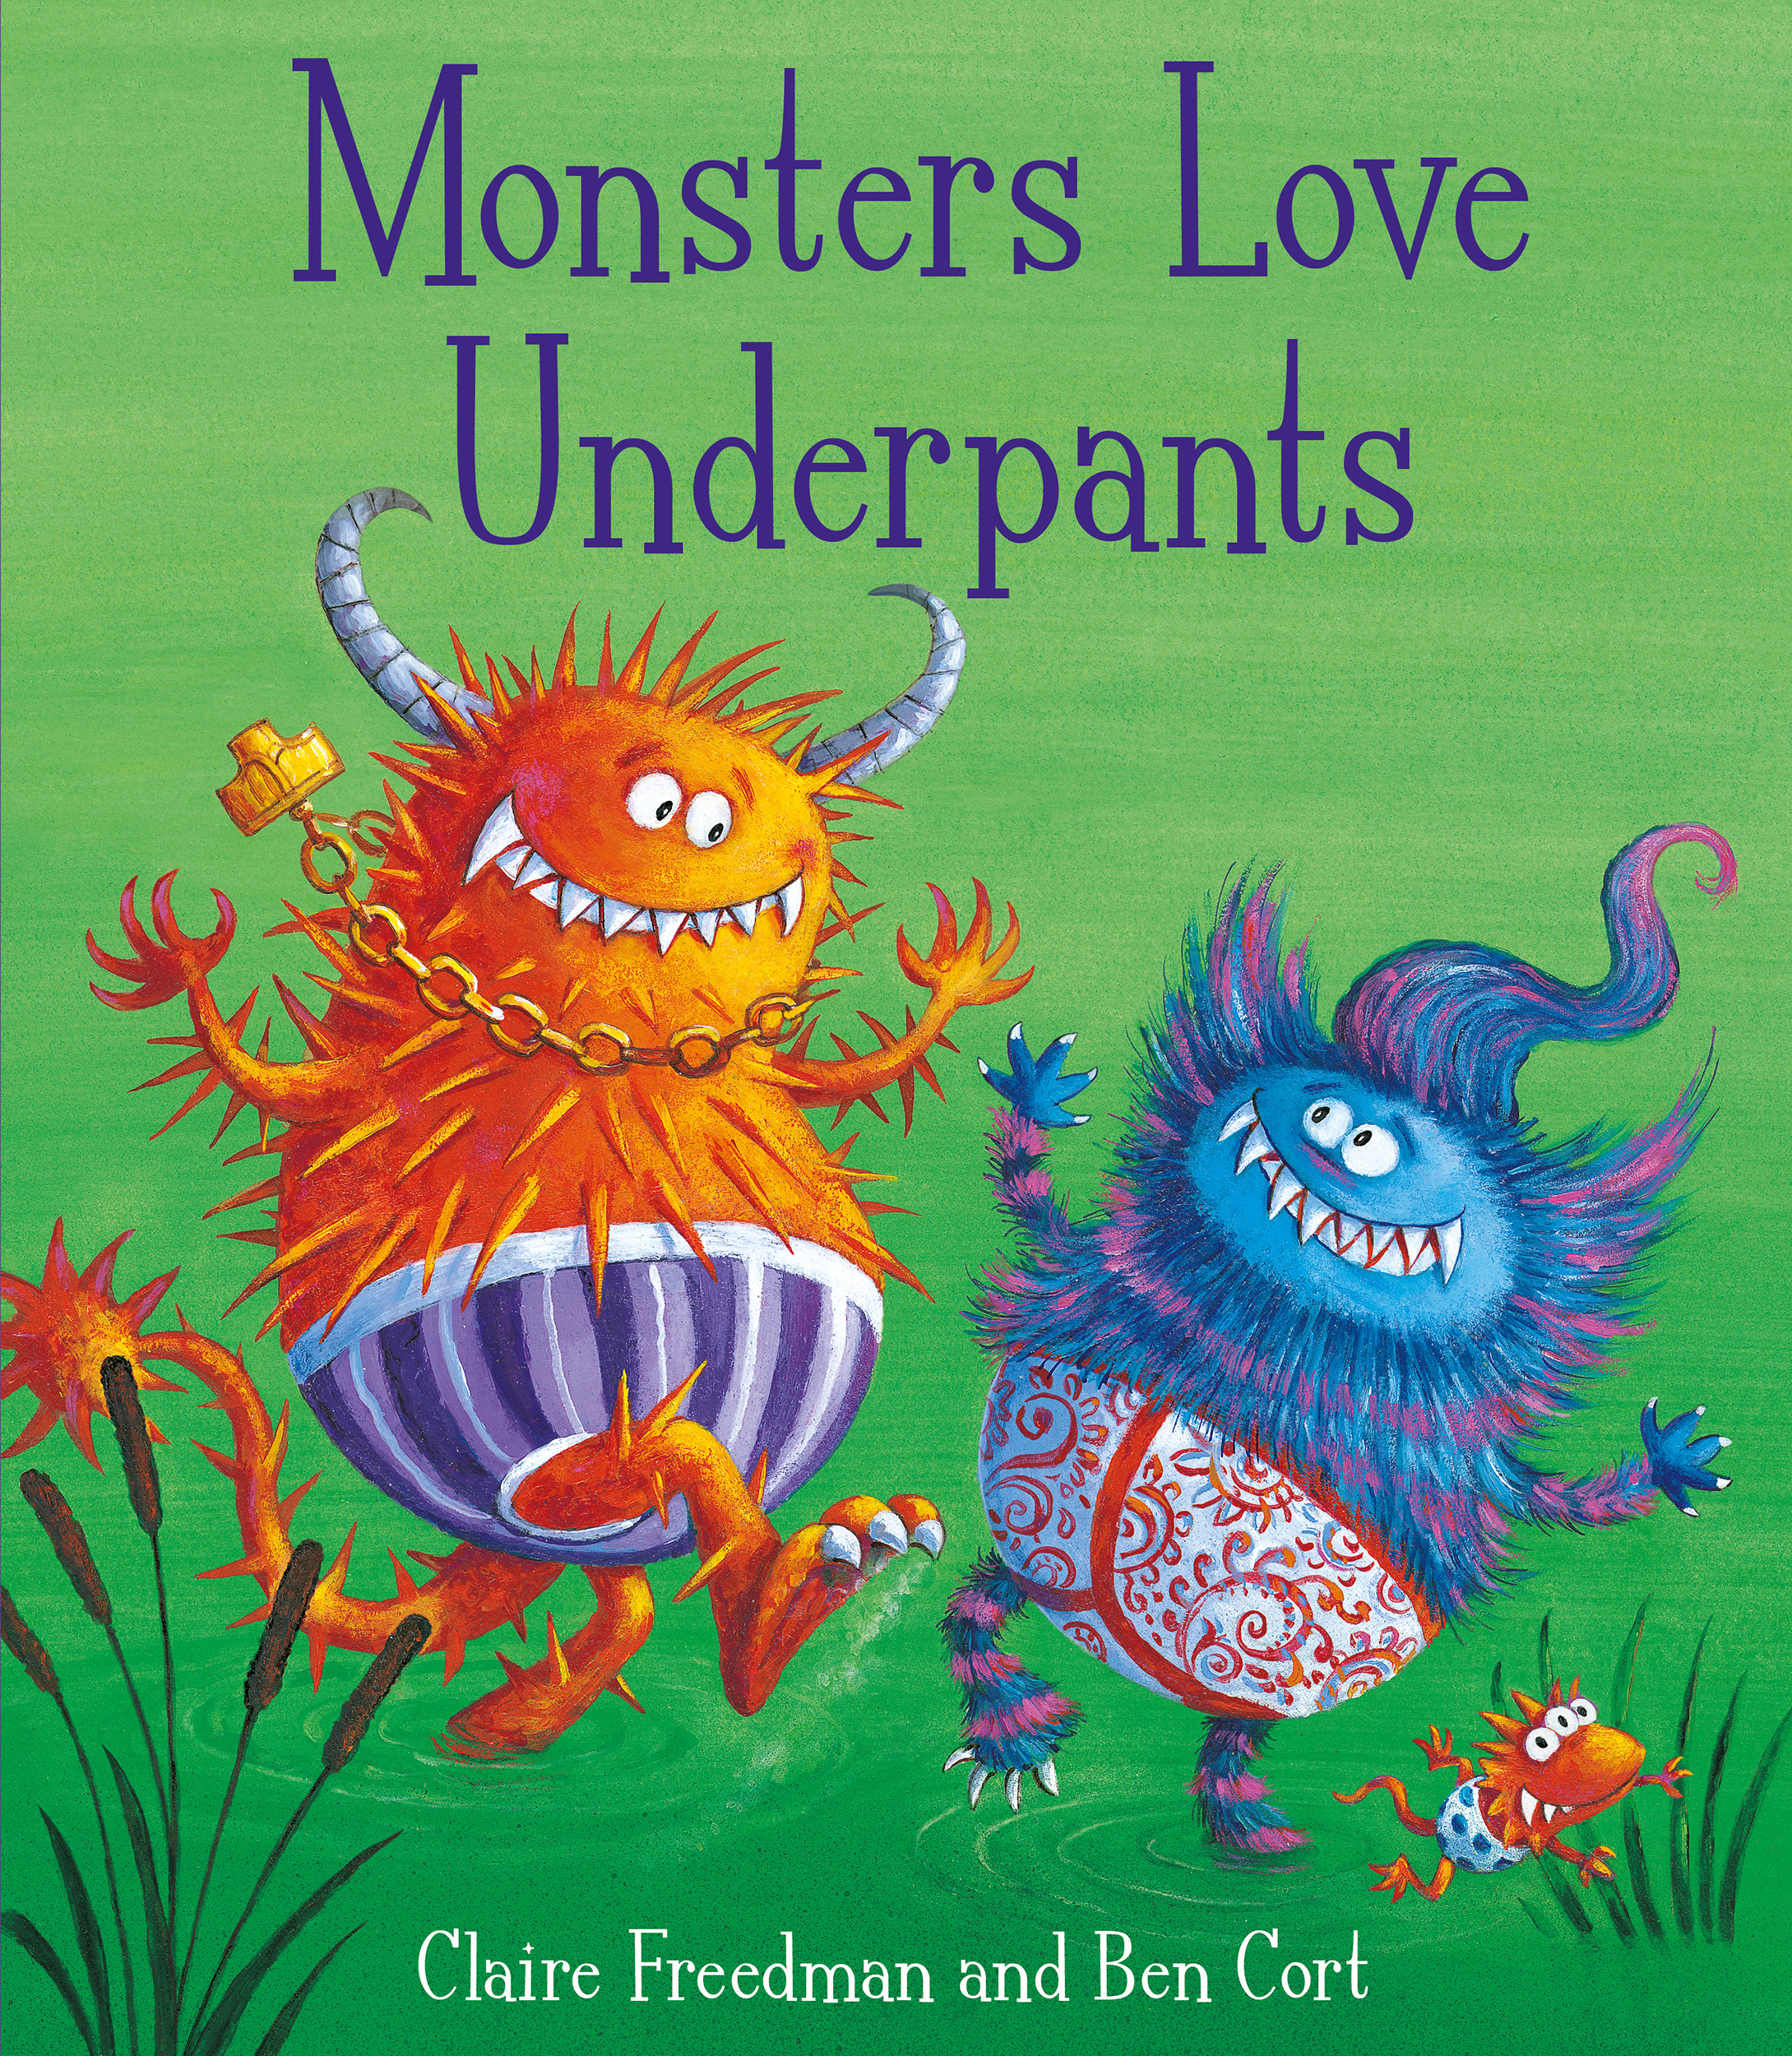 Monsters love underpants book by claire freedman ben cort book cover image jpg monsters love underpants fandeluxe Image collections